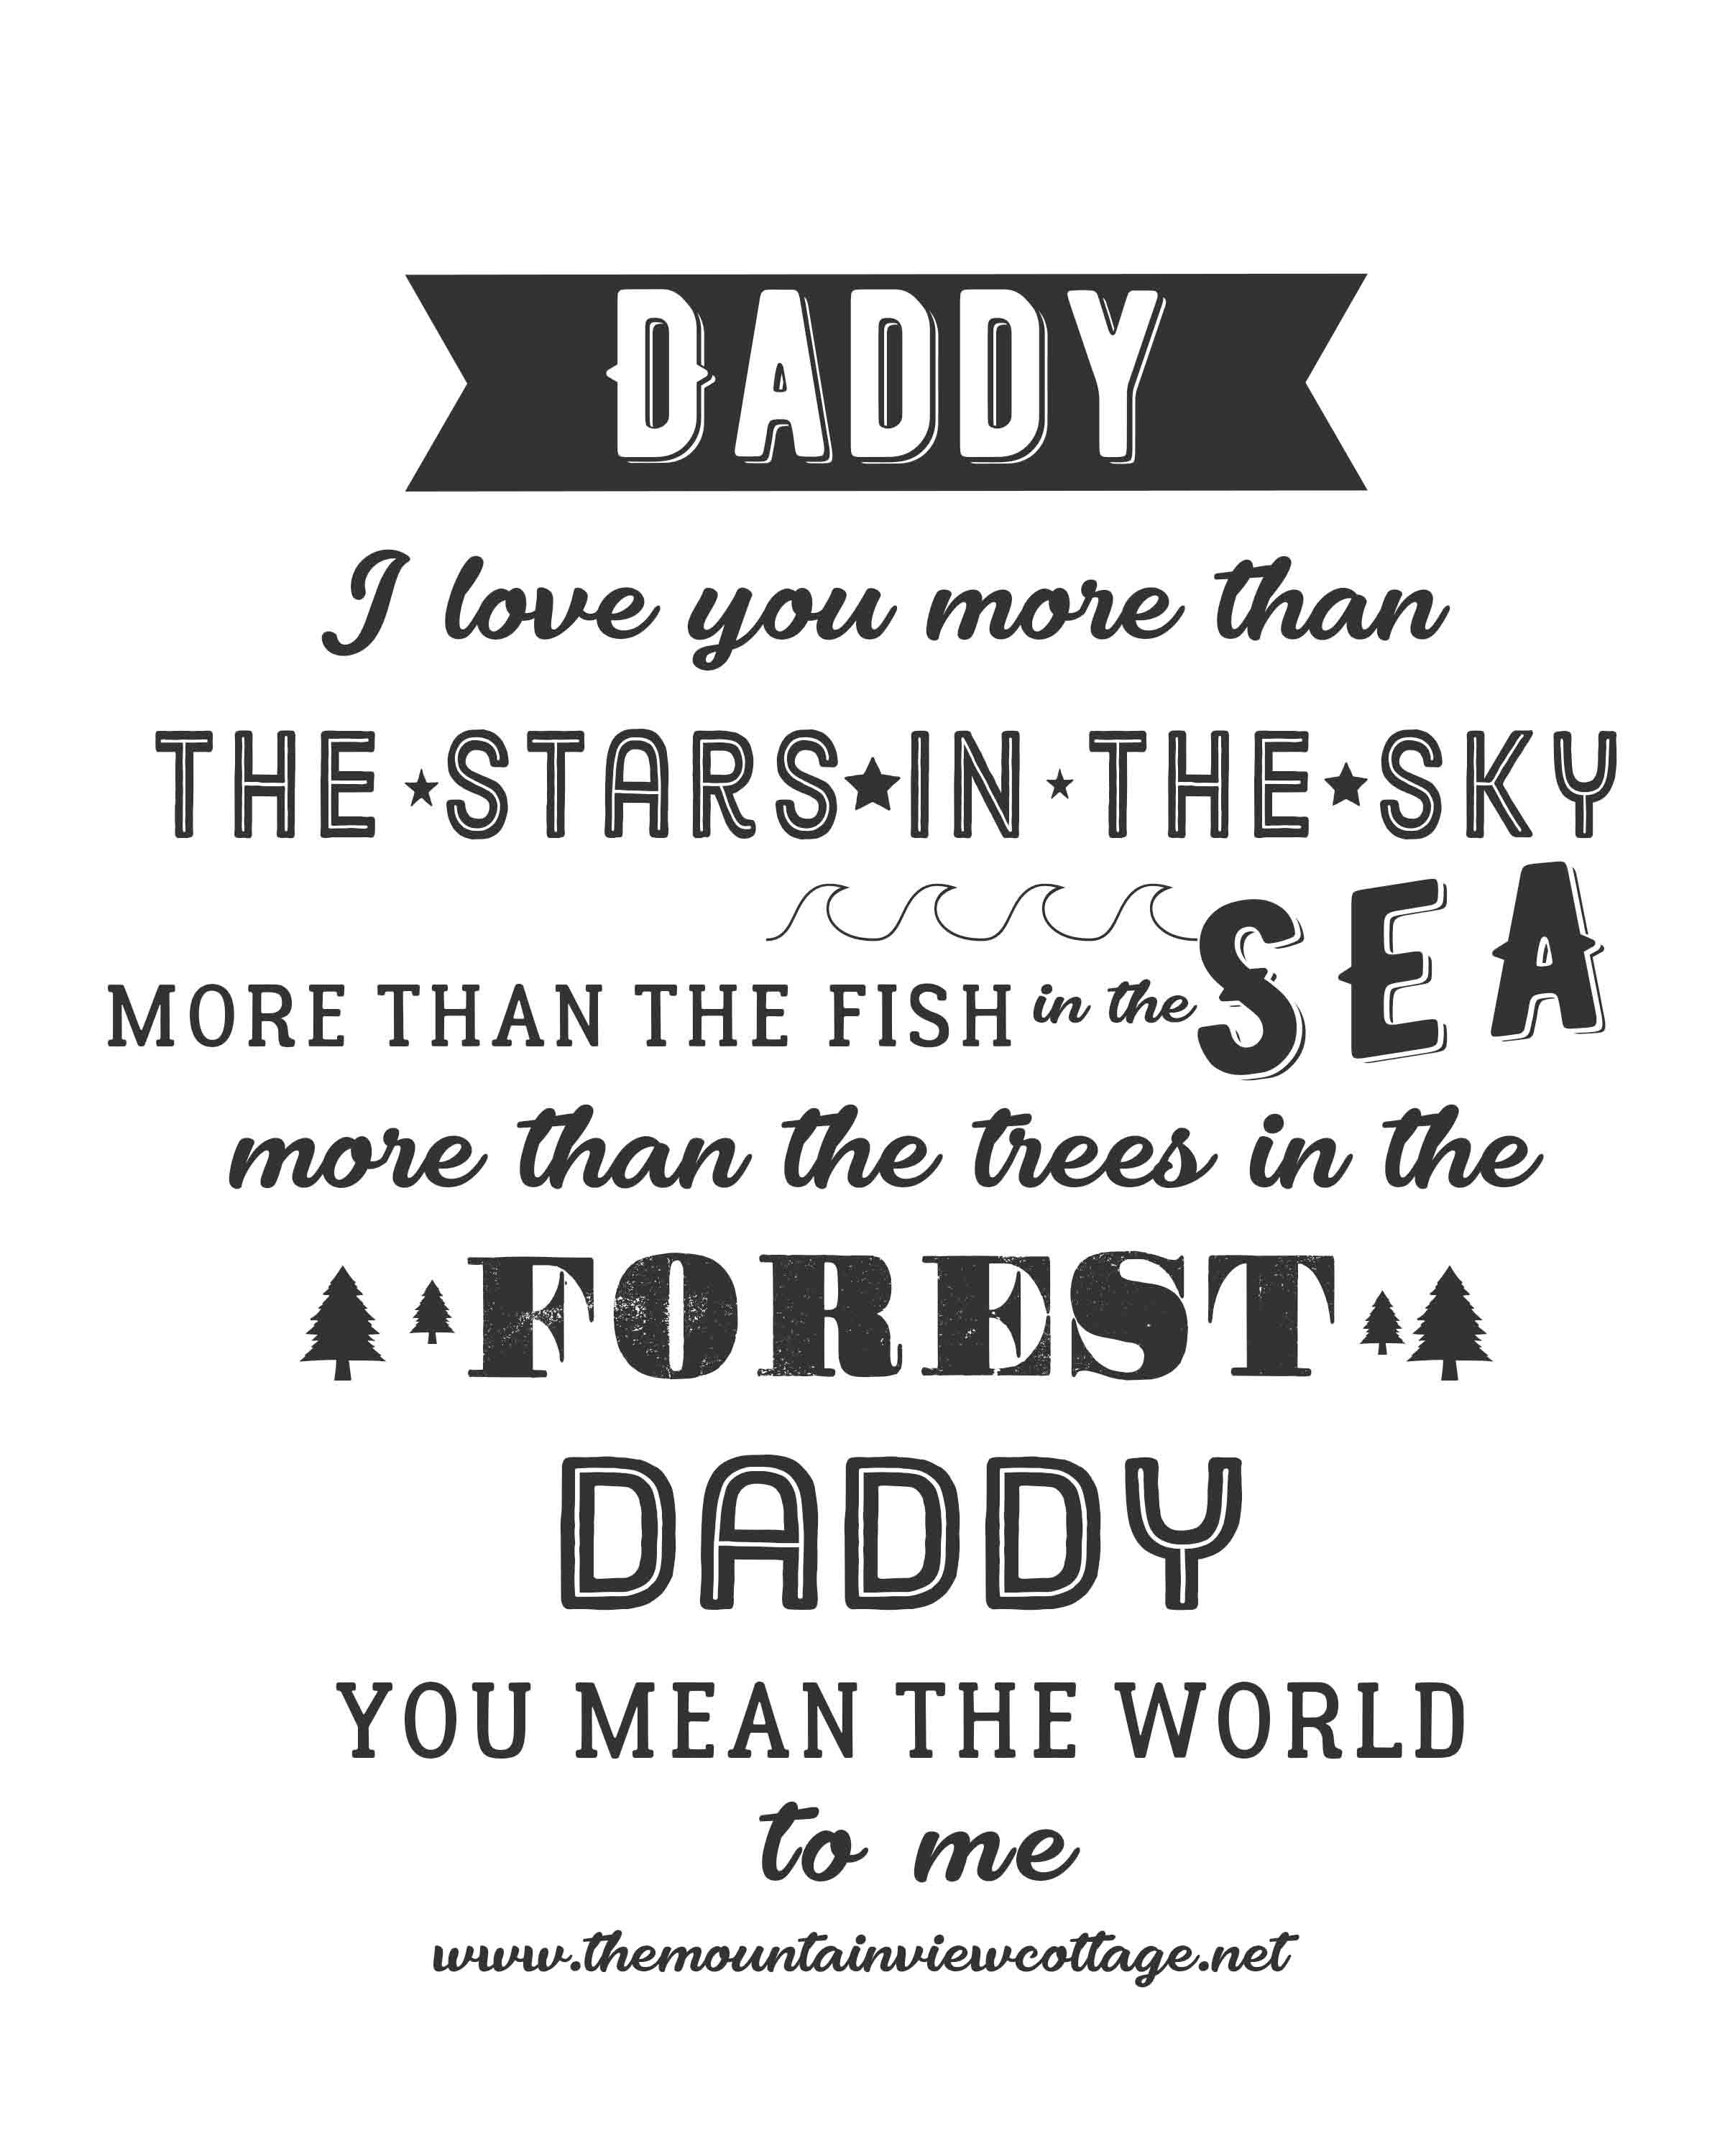 I Love You Dad Quotes 25 Dad Quotes to Inspire With Images   The Mountain View Cottage I Love You Dad Quotes